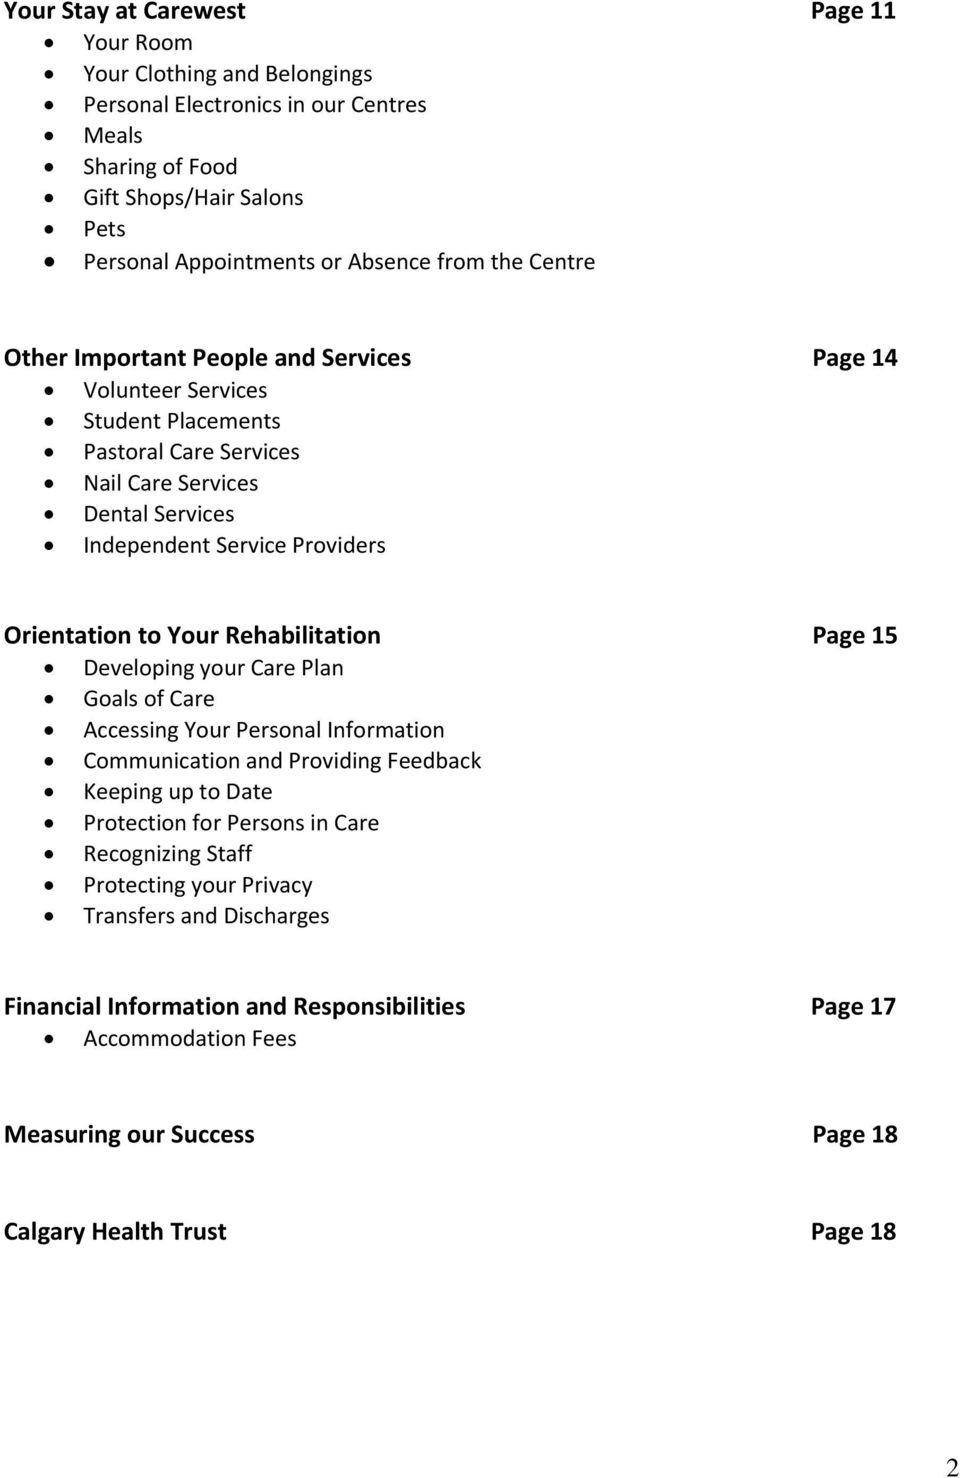 to Your Rehabilitation Page 15 Developing your Care Plan Goals of Care Accessing Your Personal Information Communication and Providing Feedback Keeping up to Date Protection for Persons in Care